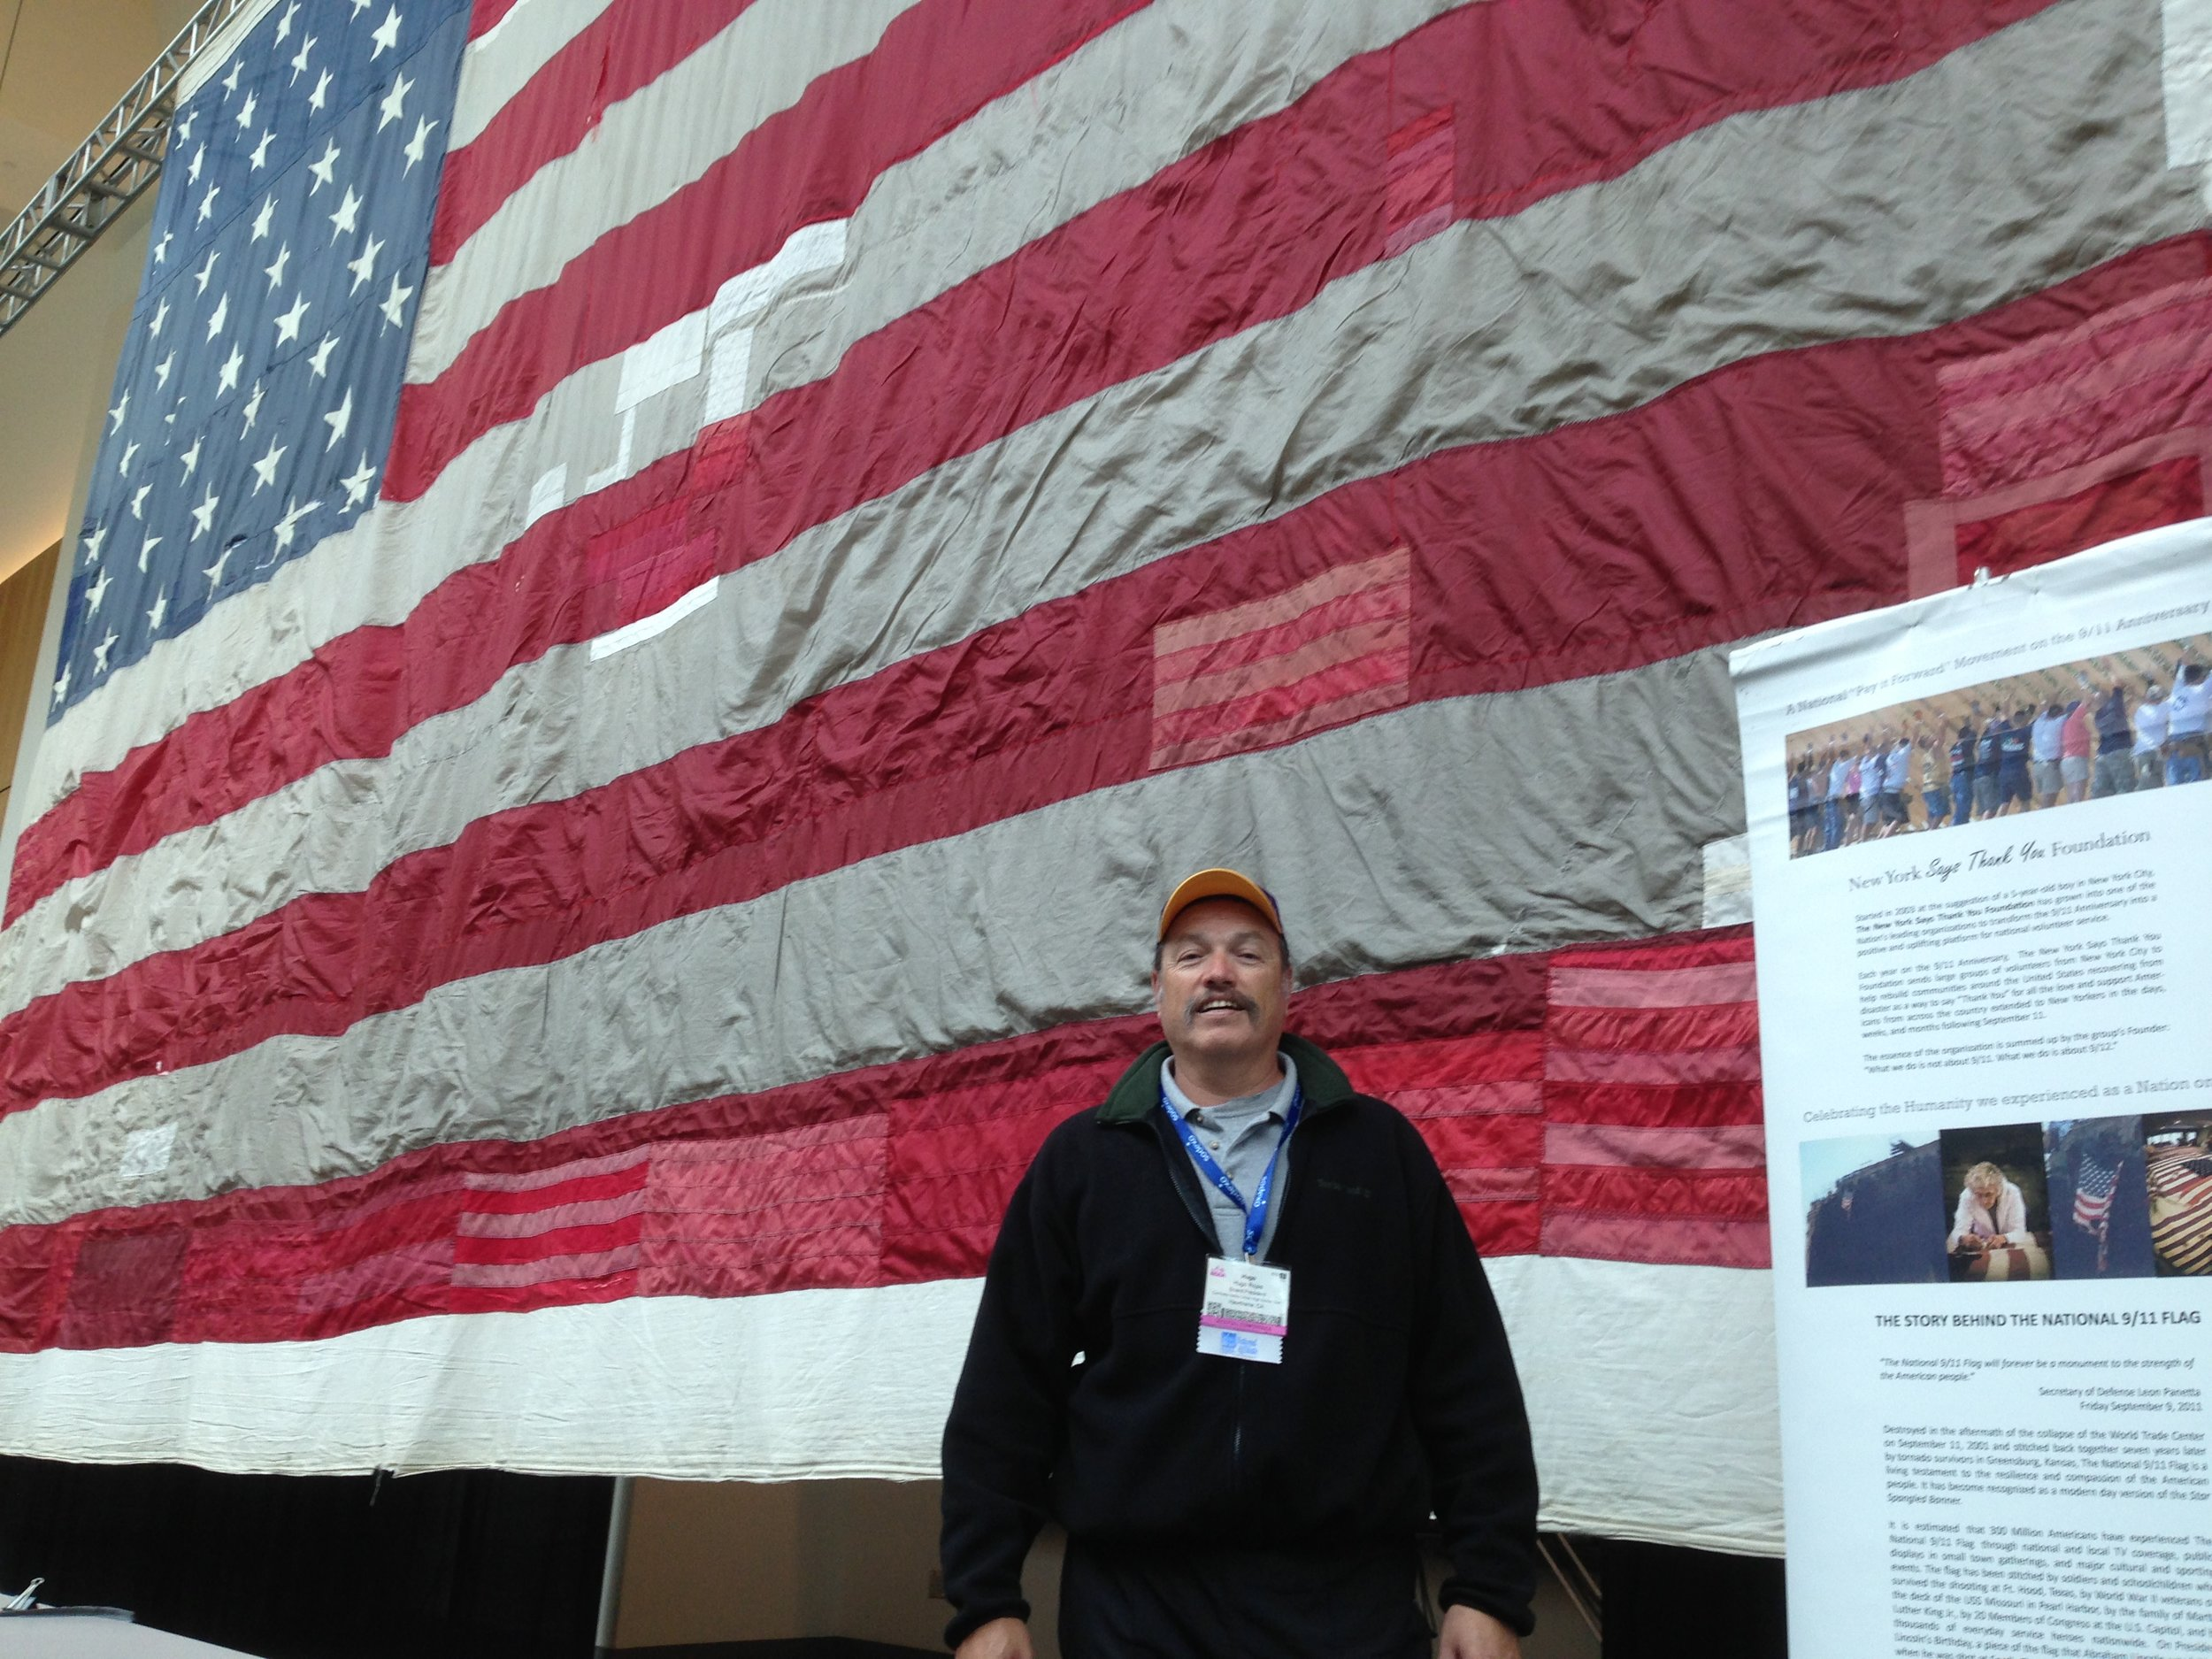 Tony with the 9/11 Memorial flag in New York City